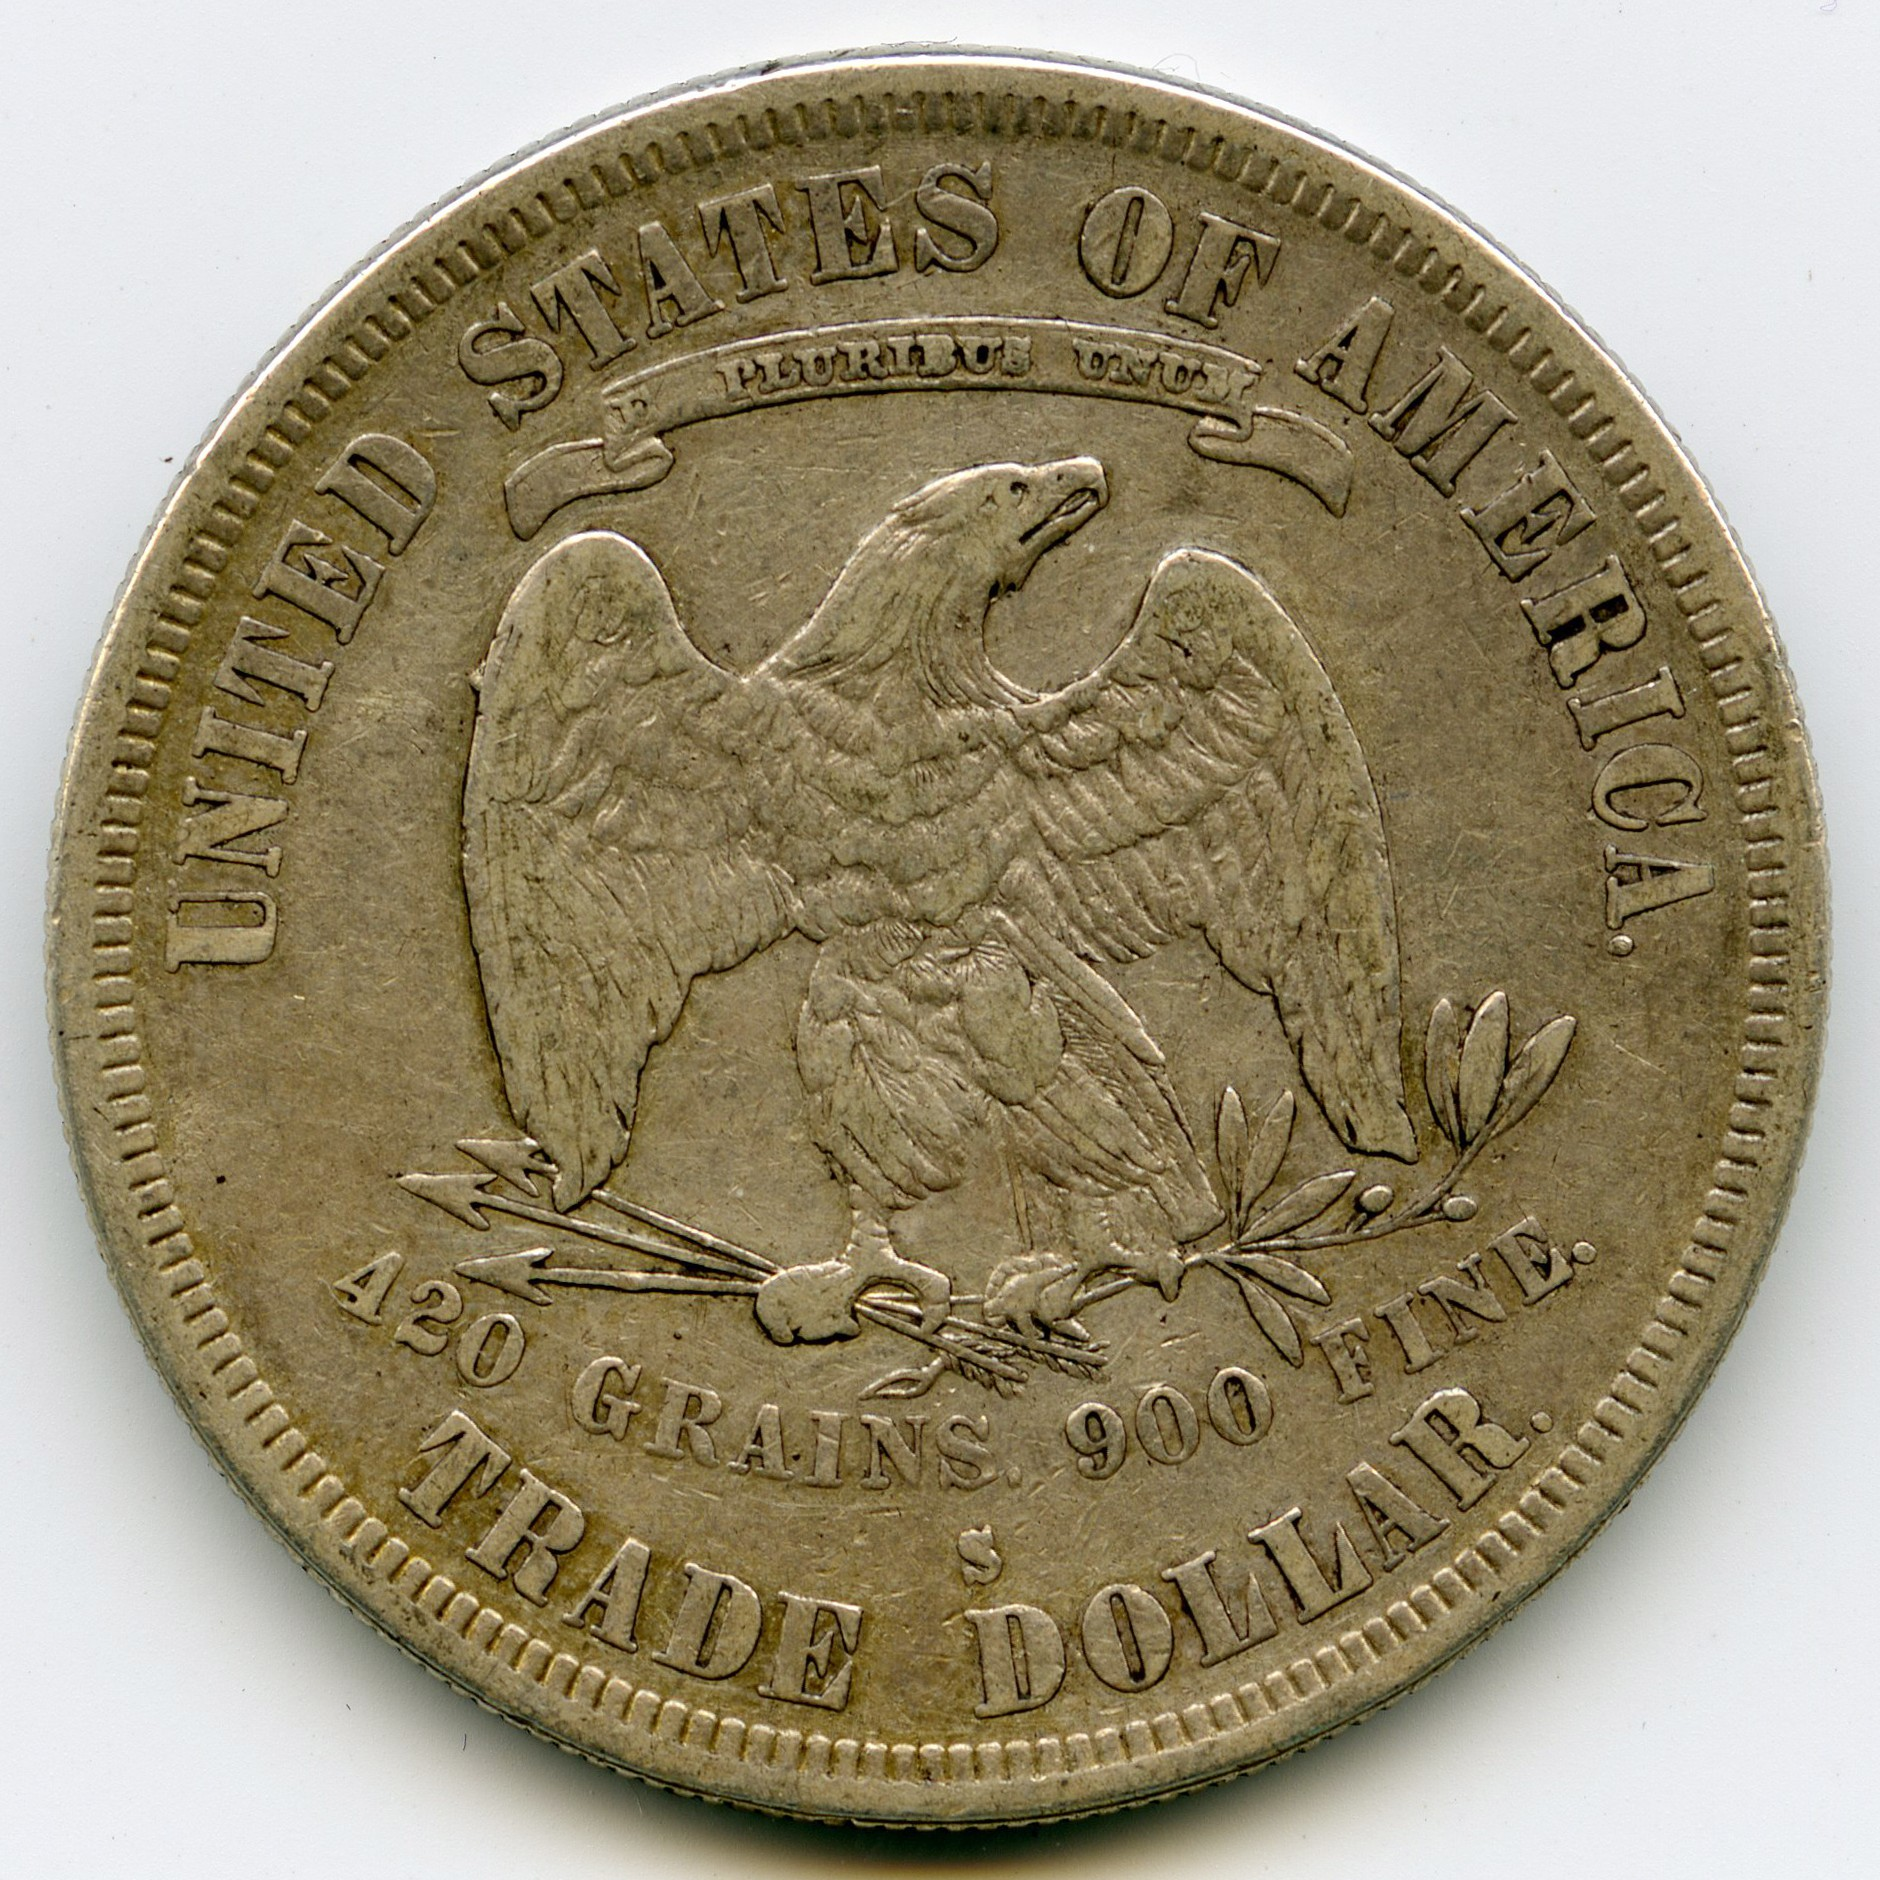 USA - Trade Dollar - 1878 S revers